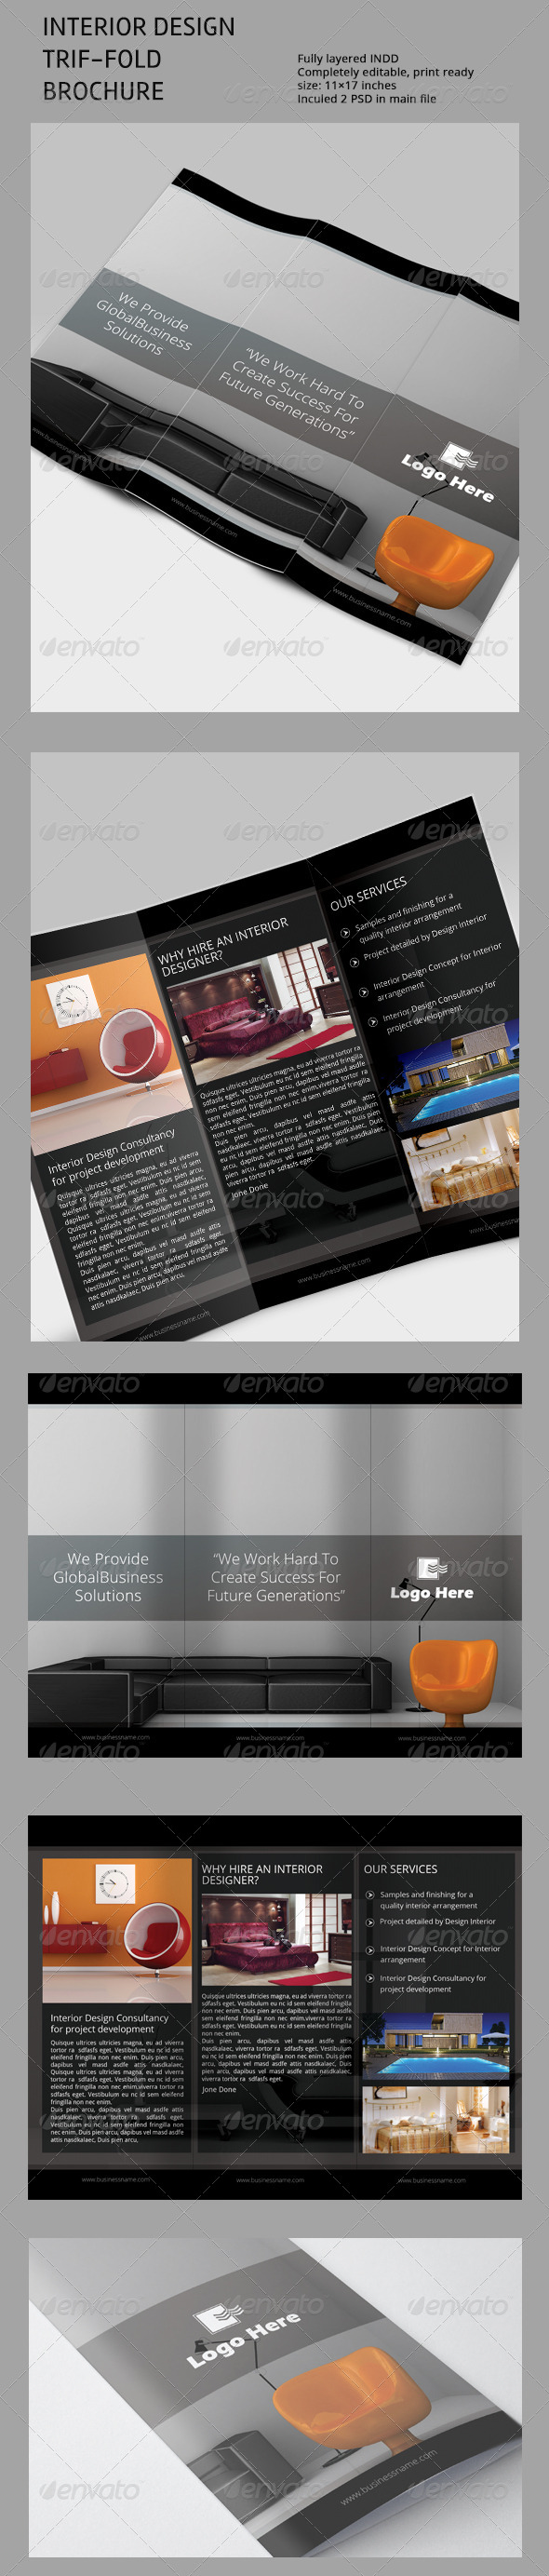 GraphicRiver Interior Design Tri-Fold Brchoure Template 6904895